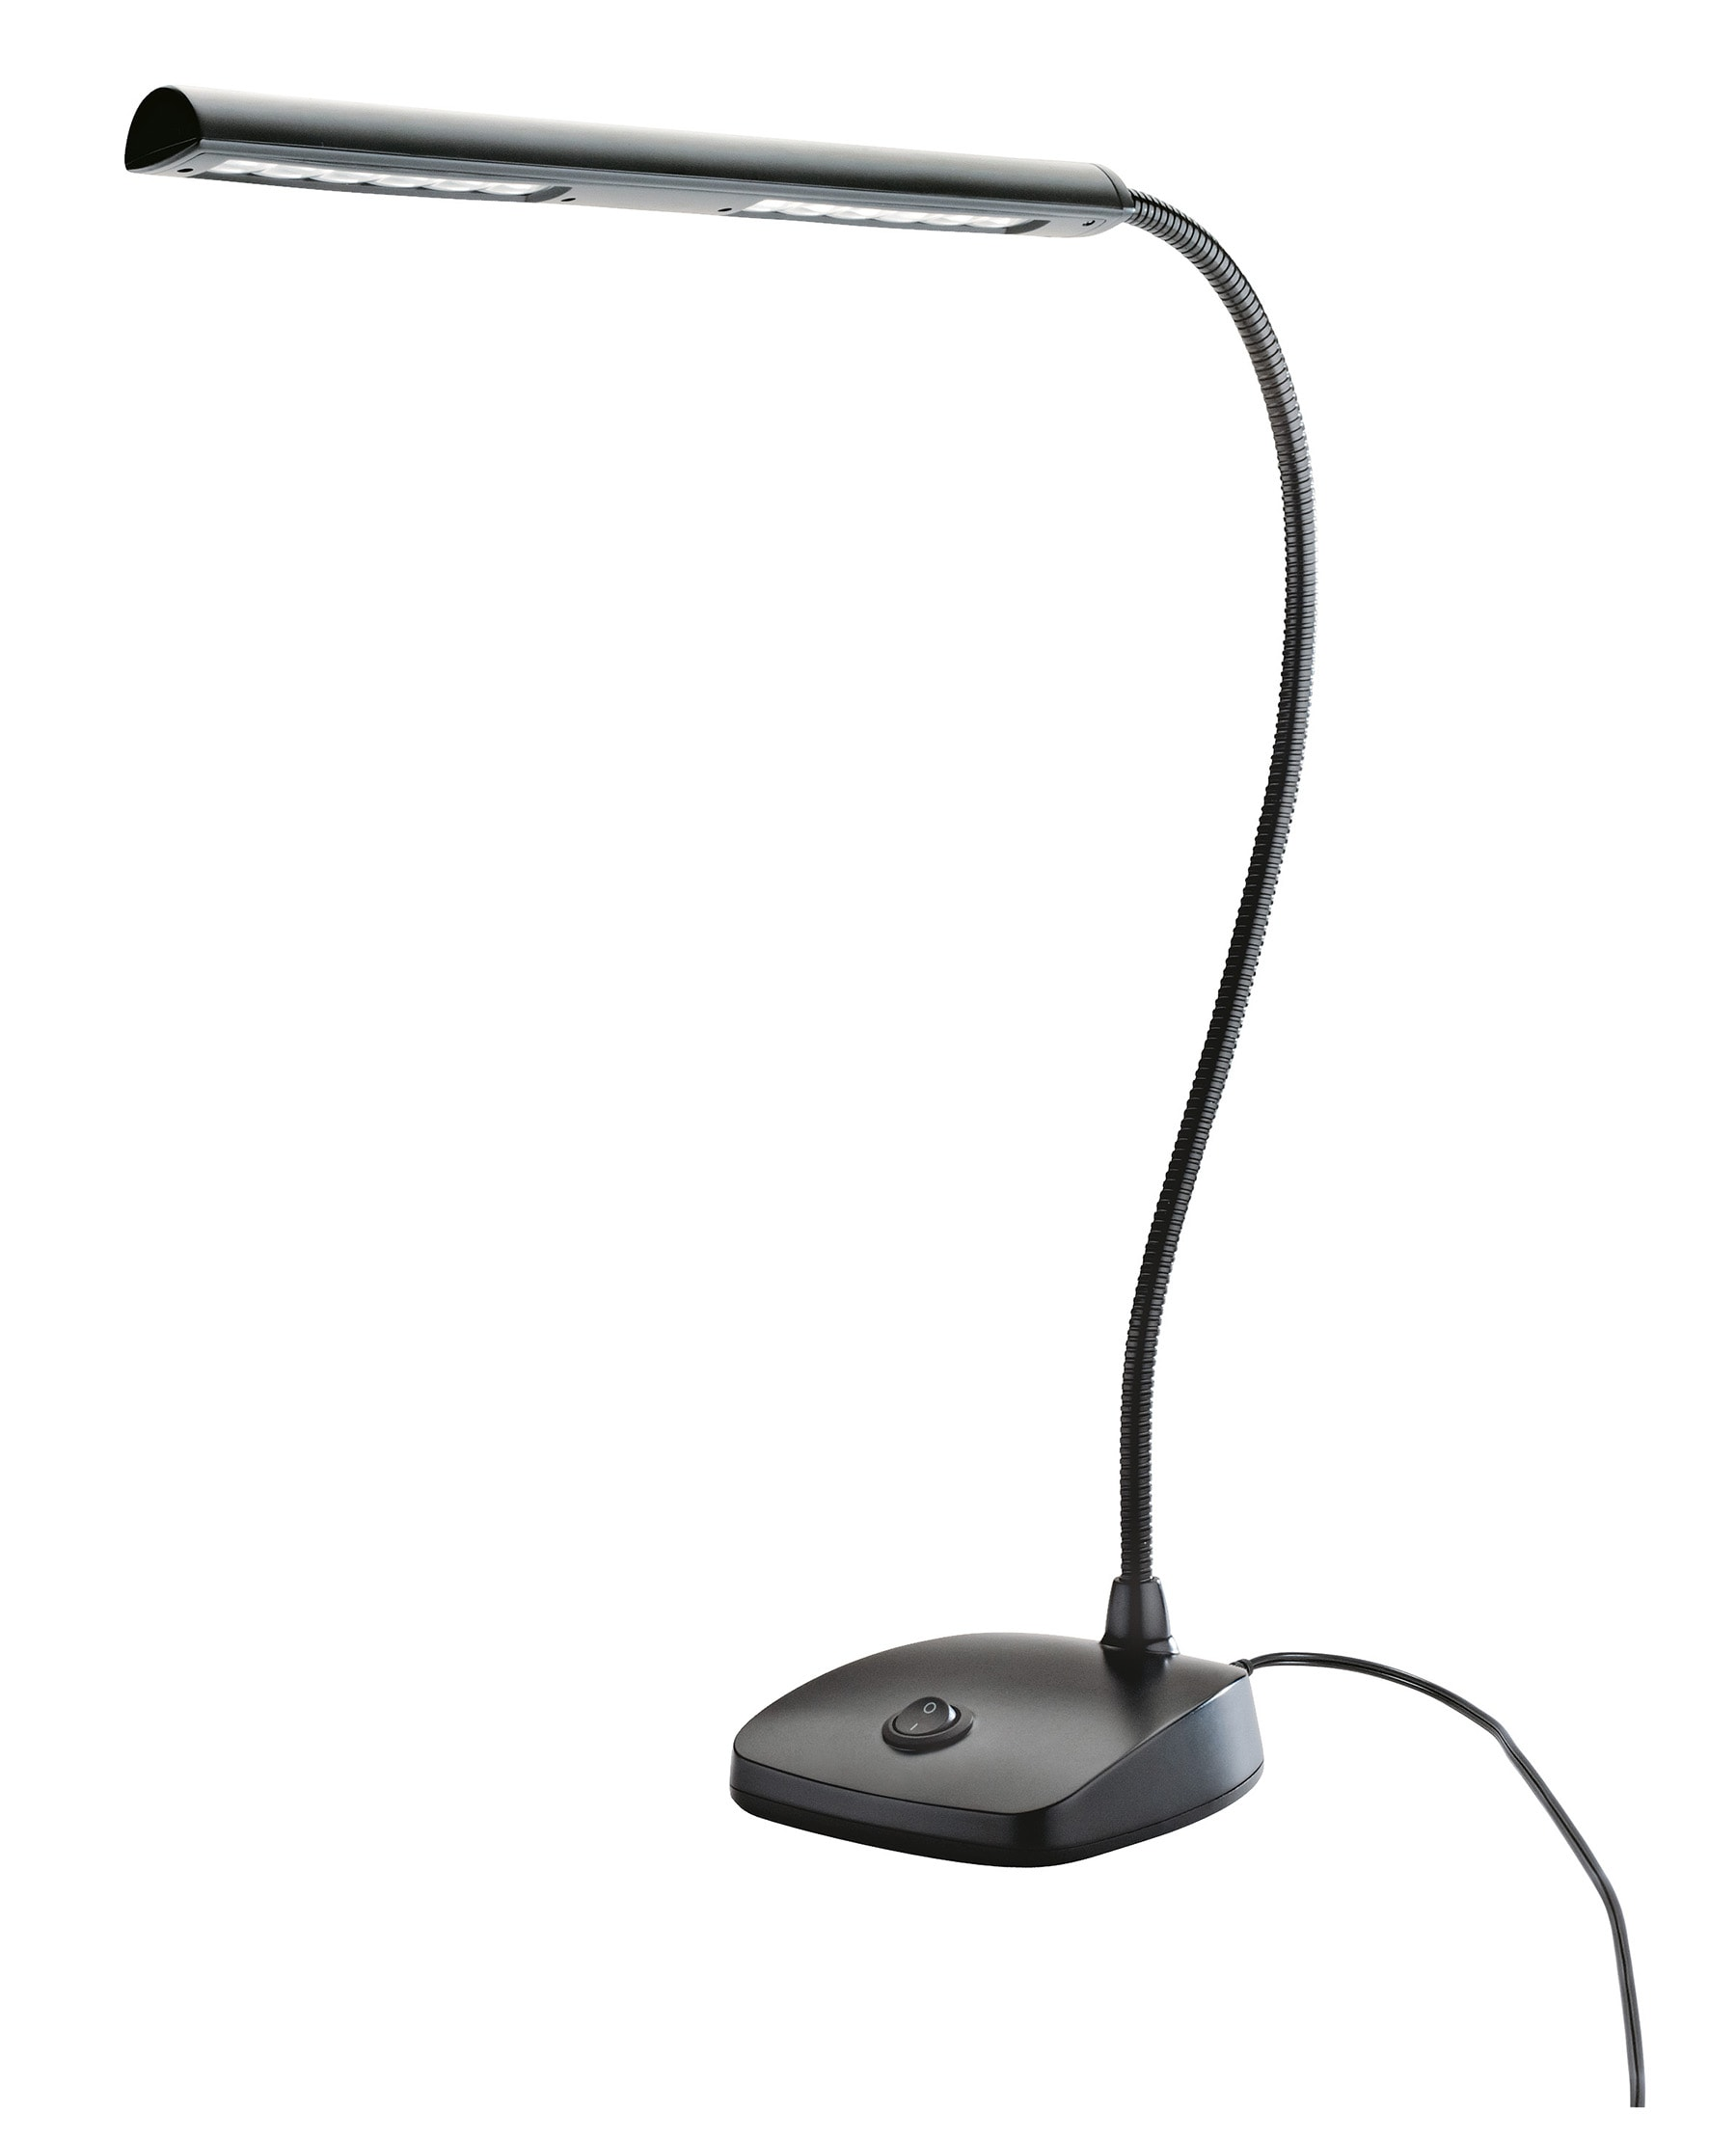 KM12296 - Led piano lamp